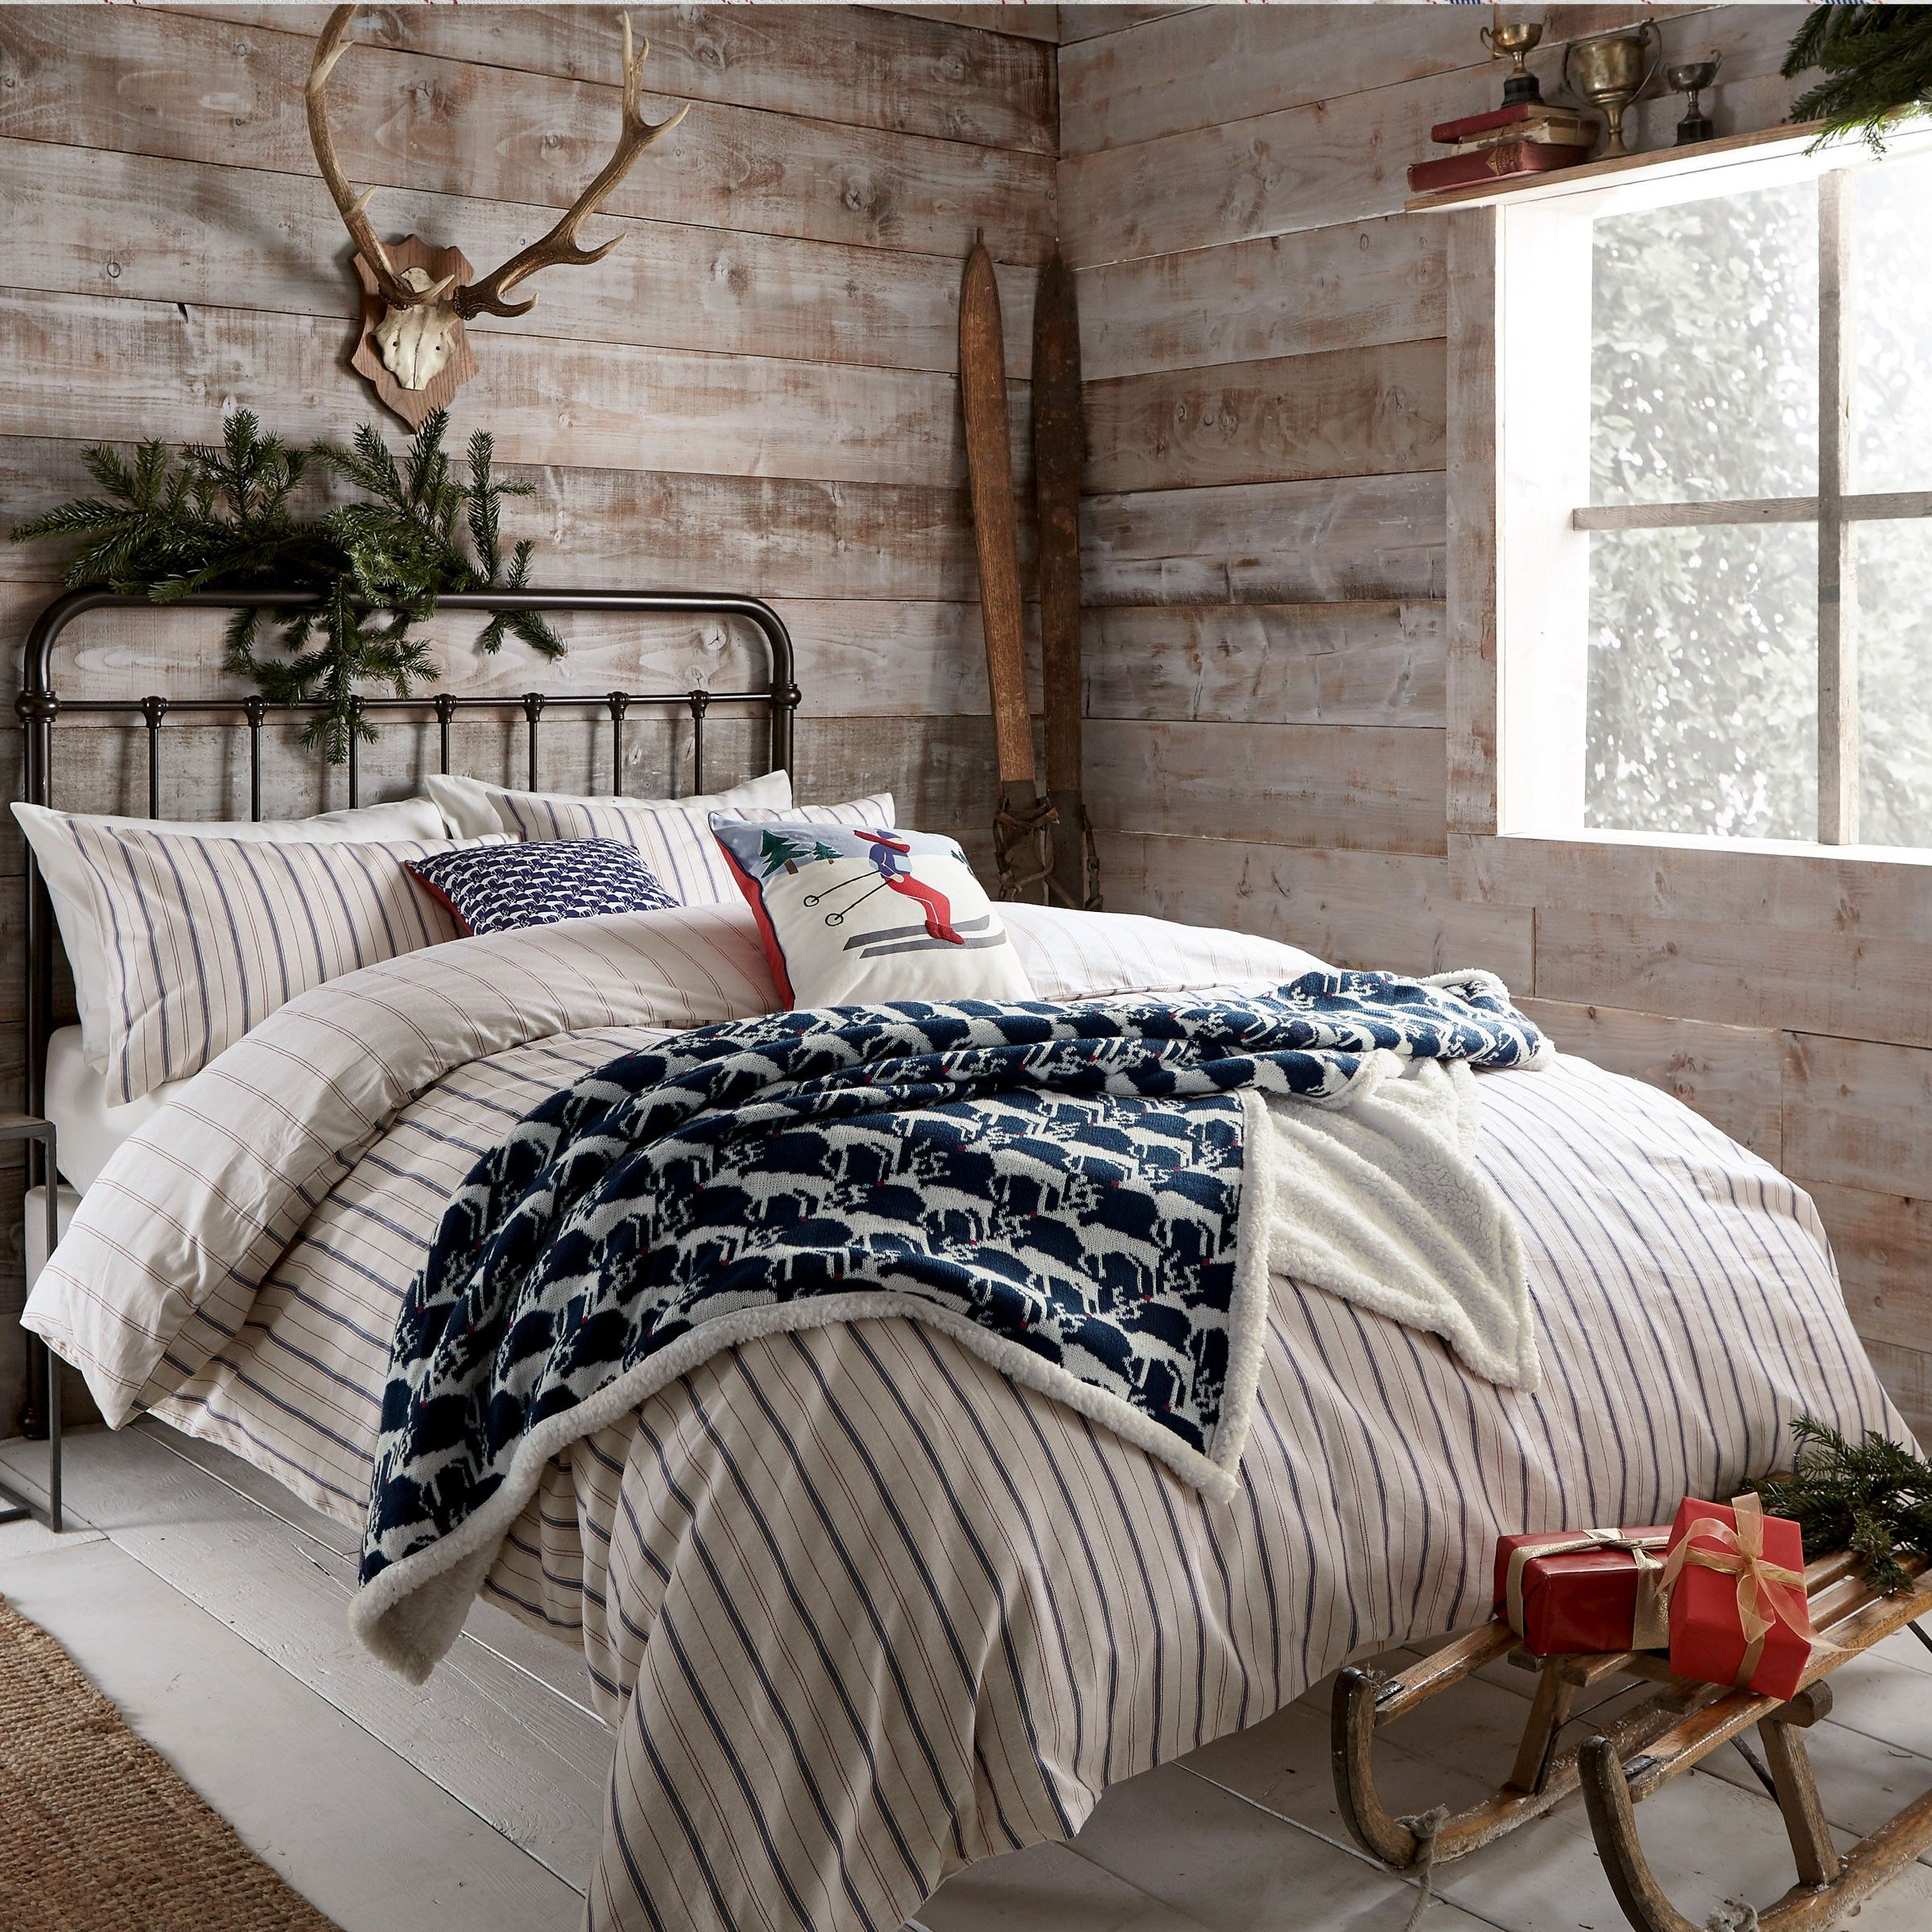 shams duvet ca shop stripe aldonstripe en front cover bedding aldon covers allen cabanastriped and ethan null striped images